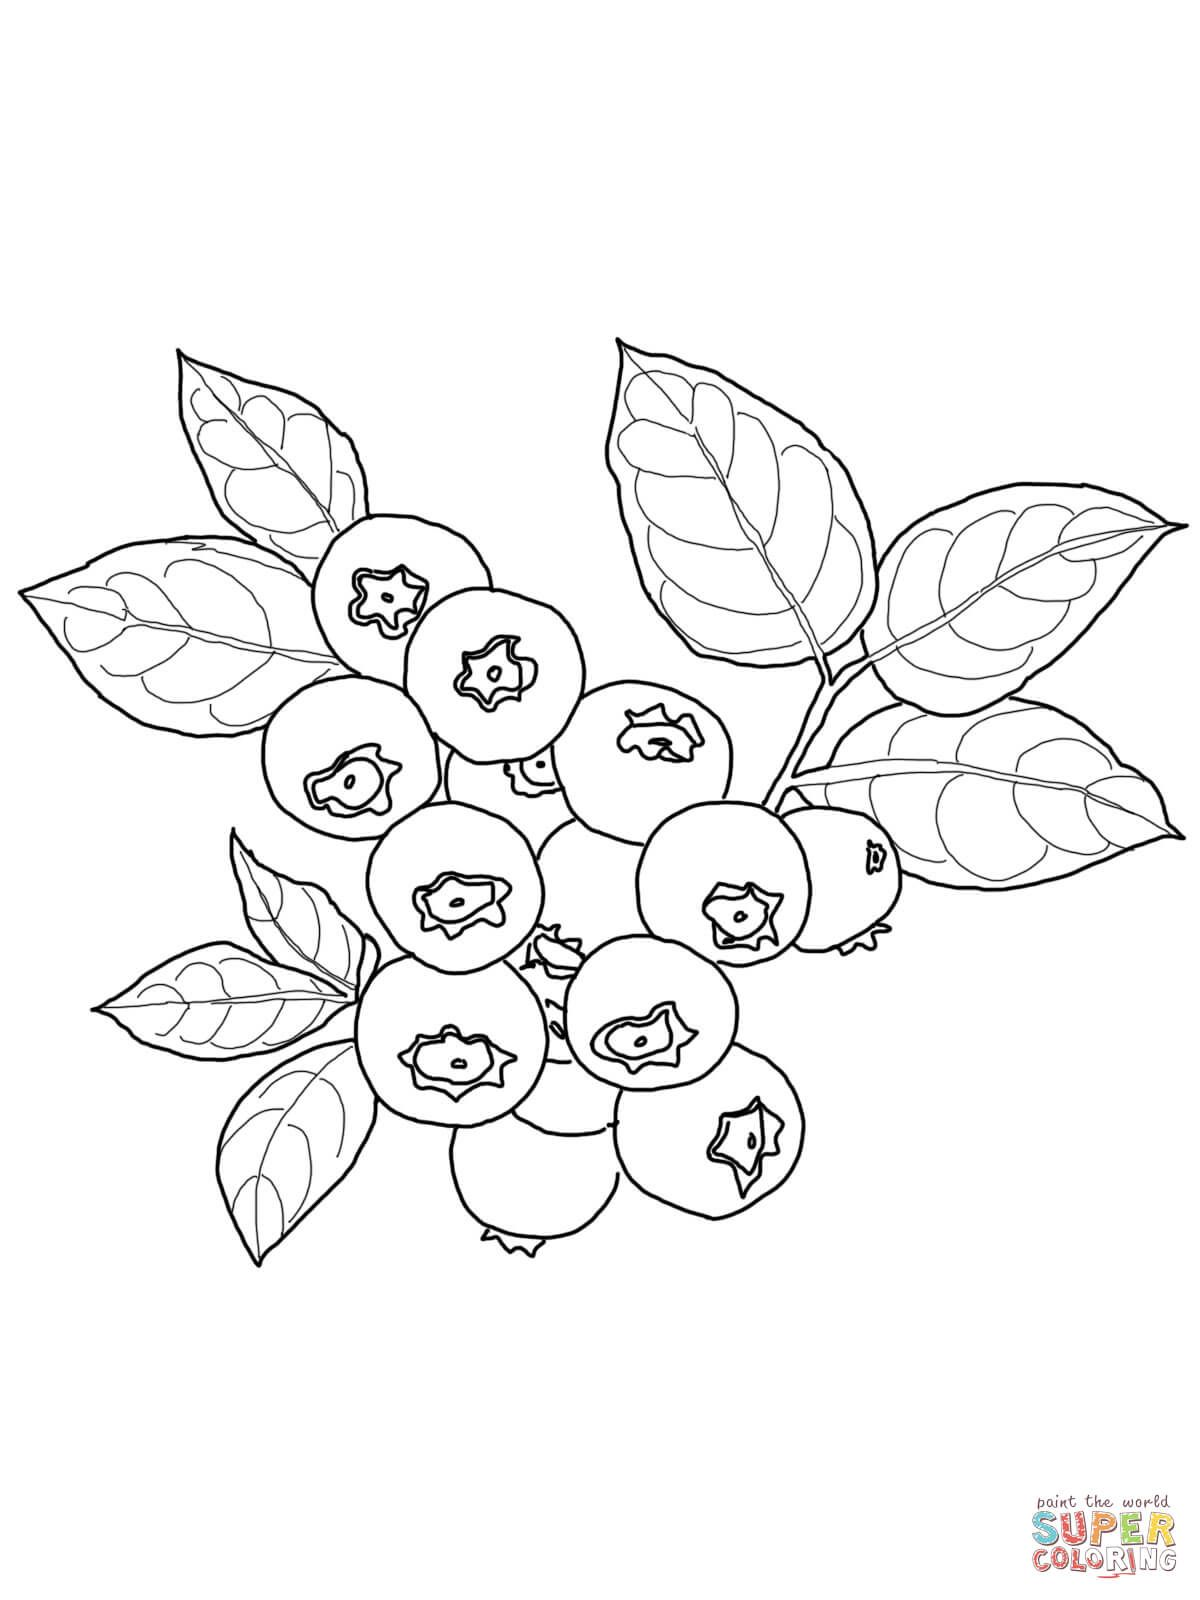 Blueberry Coloring Page From Blueberry Category Select From 26977 Printable Crafts Of Cartoons N Fruit Coloring Pages Coloring Pages Printable Coloring Pages